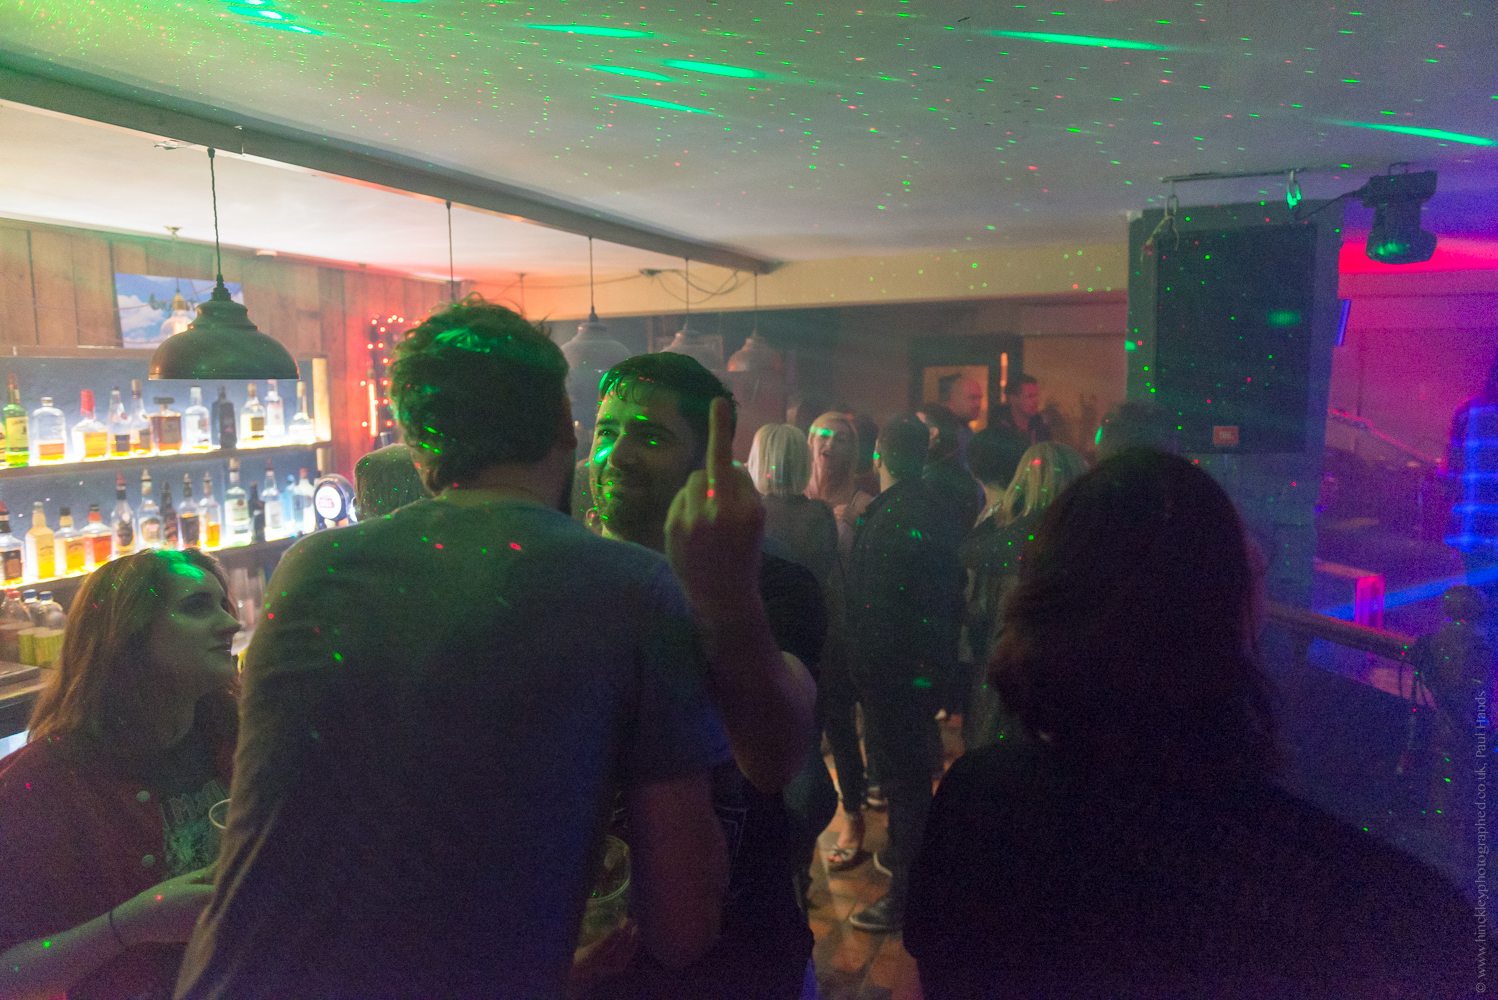 CALM Night At Karns, Hinckley, Leicestershire, Paul Hands,  Steven Faulkner, Lucille, The Kontours, Luna Kiss, The Social Ignition, Derby, Derbyshire, Karns, Wine Bar, Pub, Gig, Bands, Live Music